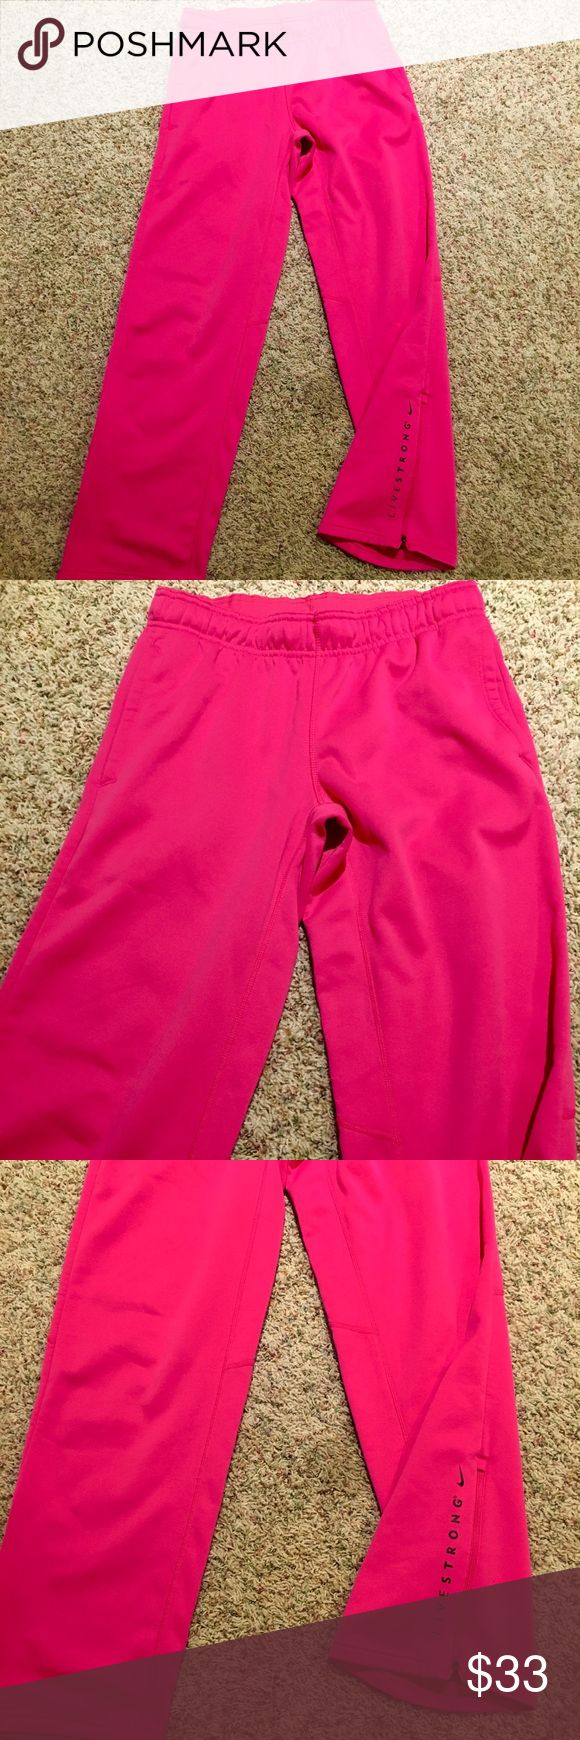 NIKE LIVESTRONG THERMAFIT SWEATPANTS WOMENS NIKE LIVESTRONG MEDIUM THERMAFIT SWEATPANTS. 31 IN INSEAM- ONLY WORE 2-3 TIMES. GREAT CONDITION AS SEEN IN PICS Nike Pants Track Pants & Joggers